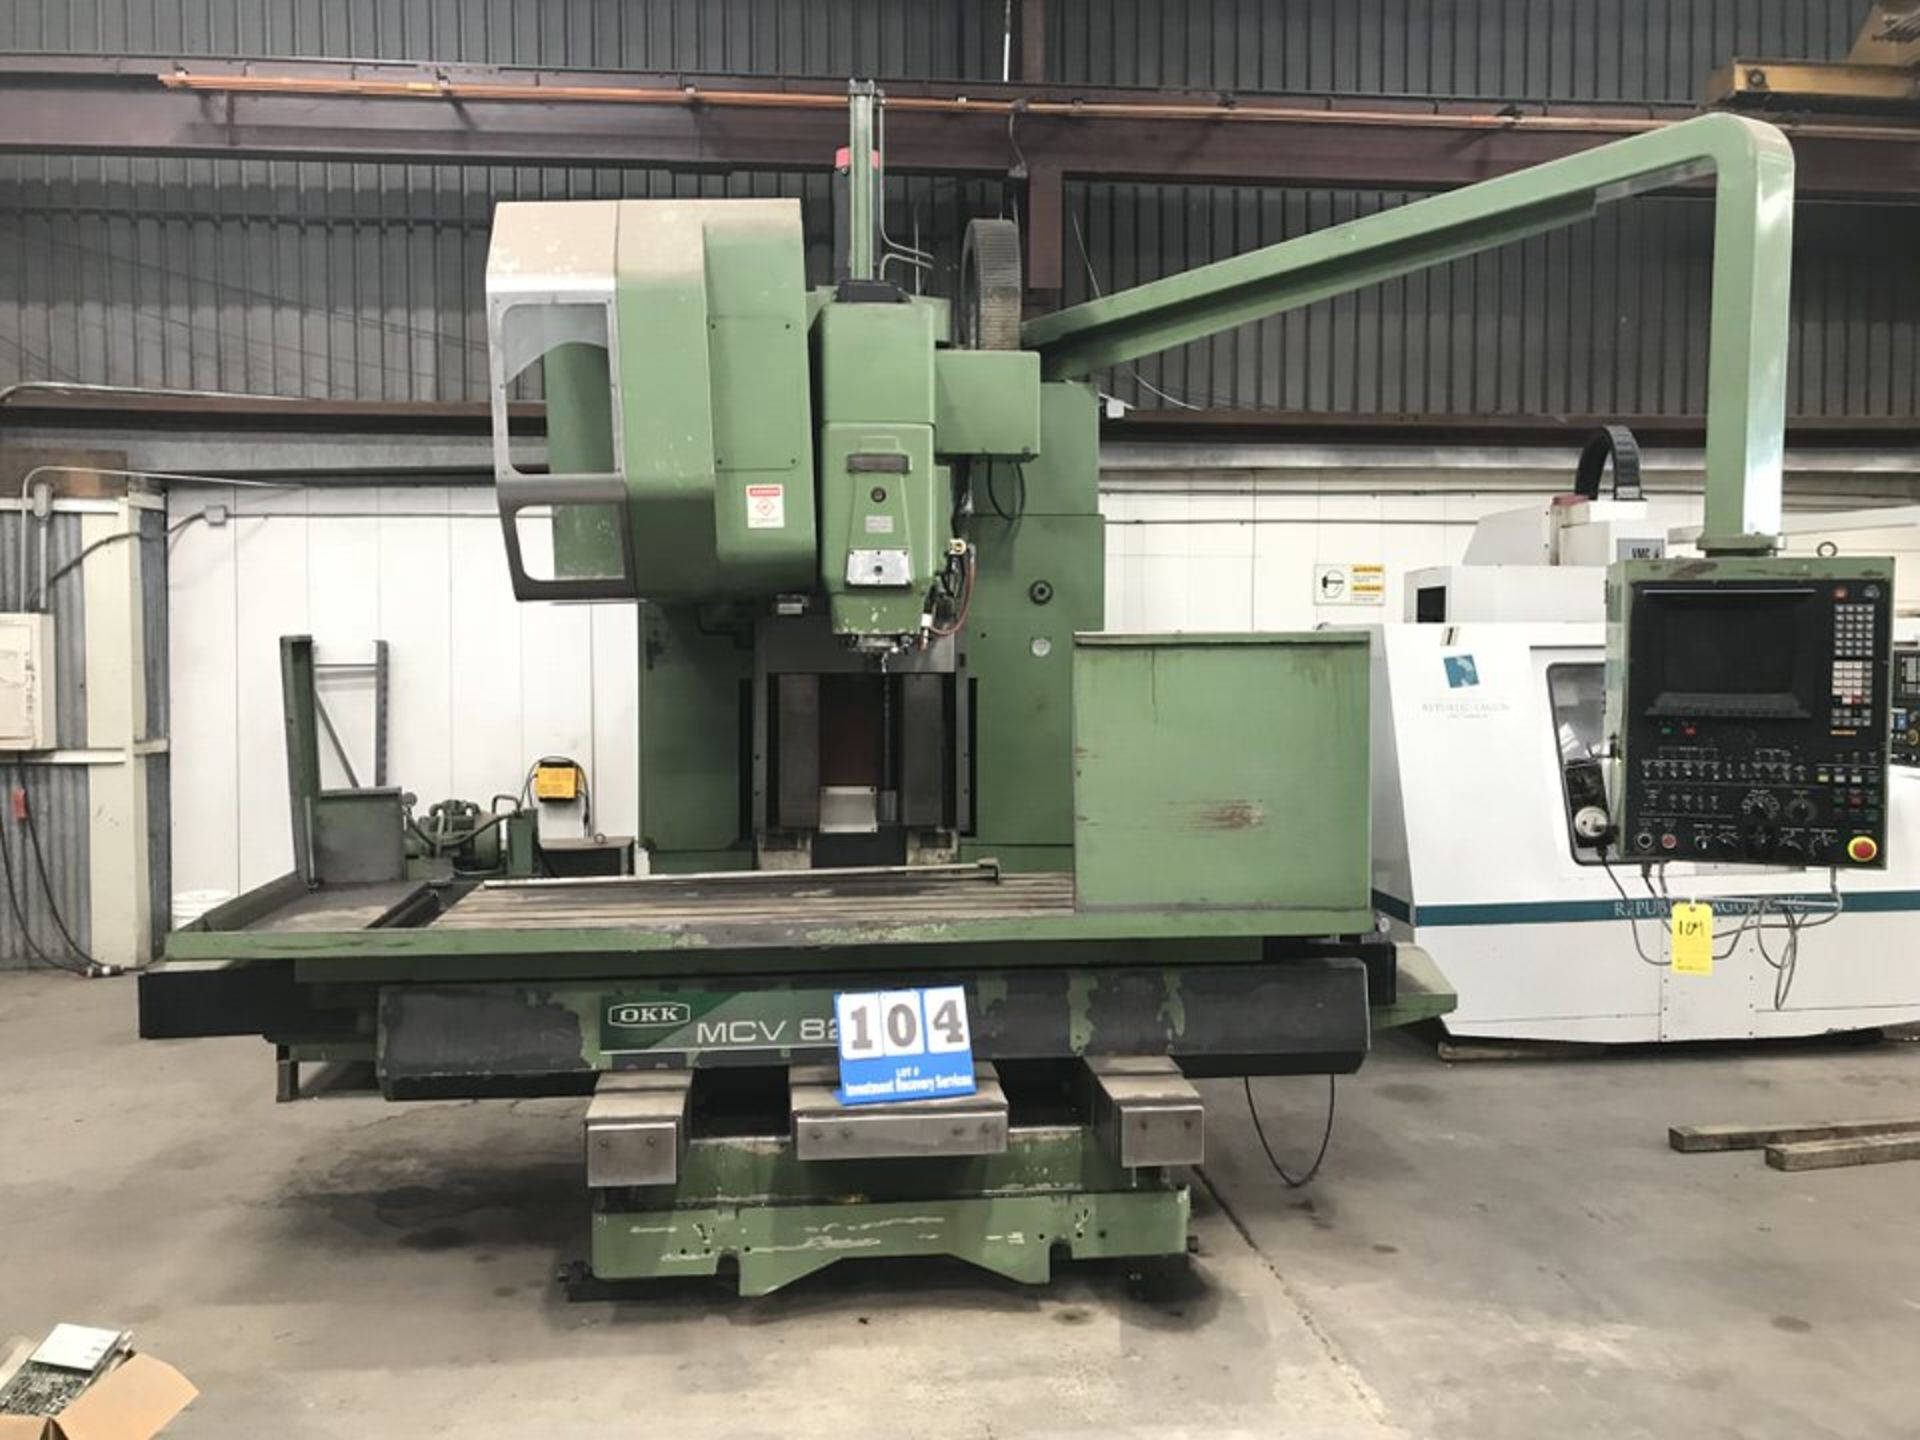 "Lot 104 - Okk MCV 820 Vertical Milling Machine, Table: 78"" x 32"", X Axis:62"", Y Axis: 32"", Z Axis: 28"", Spin"